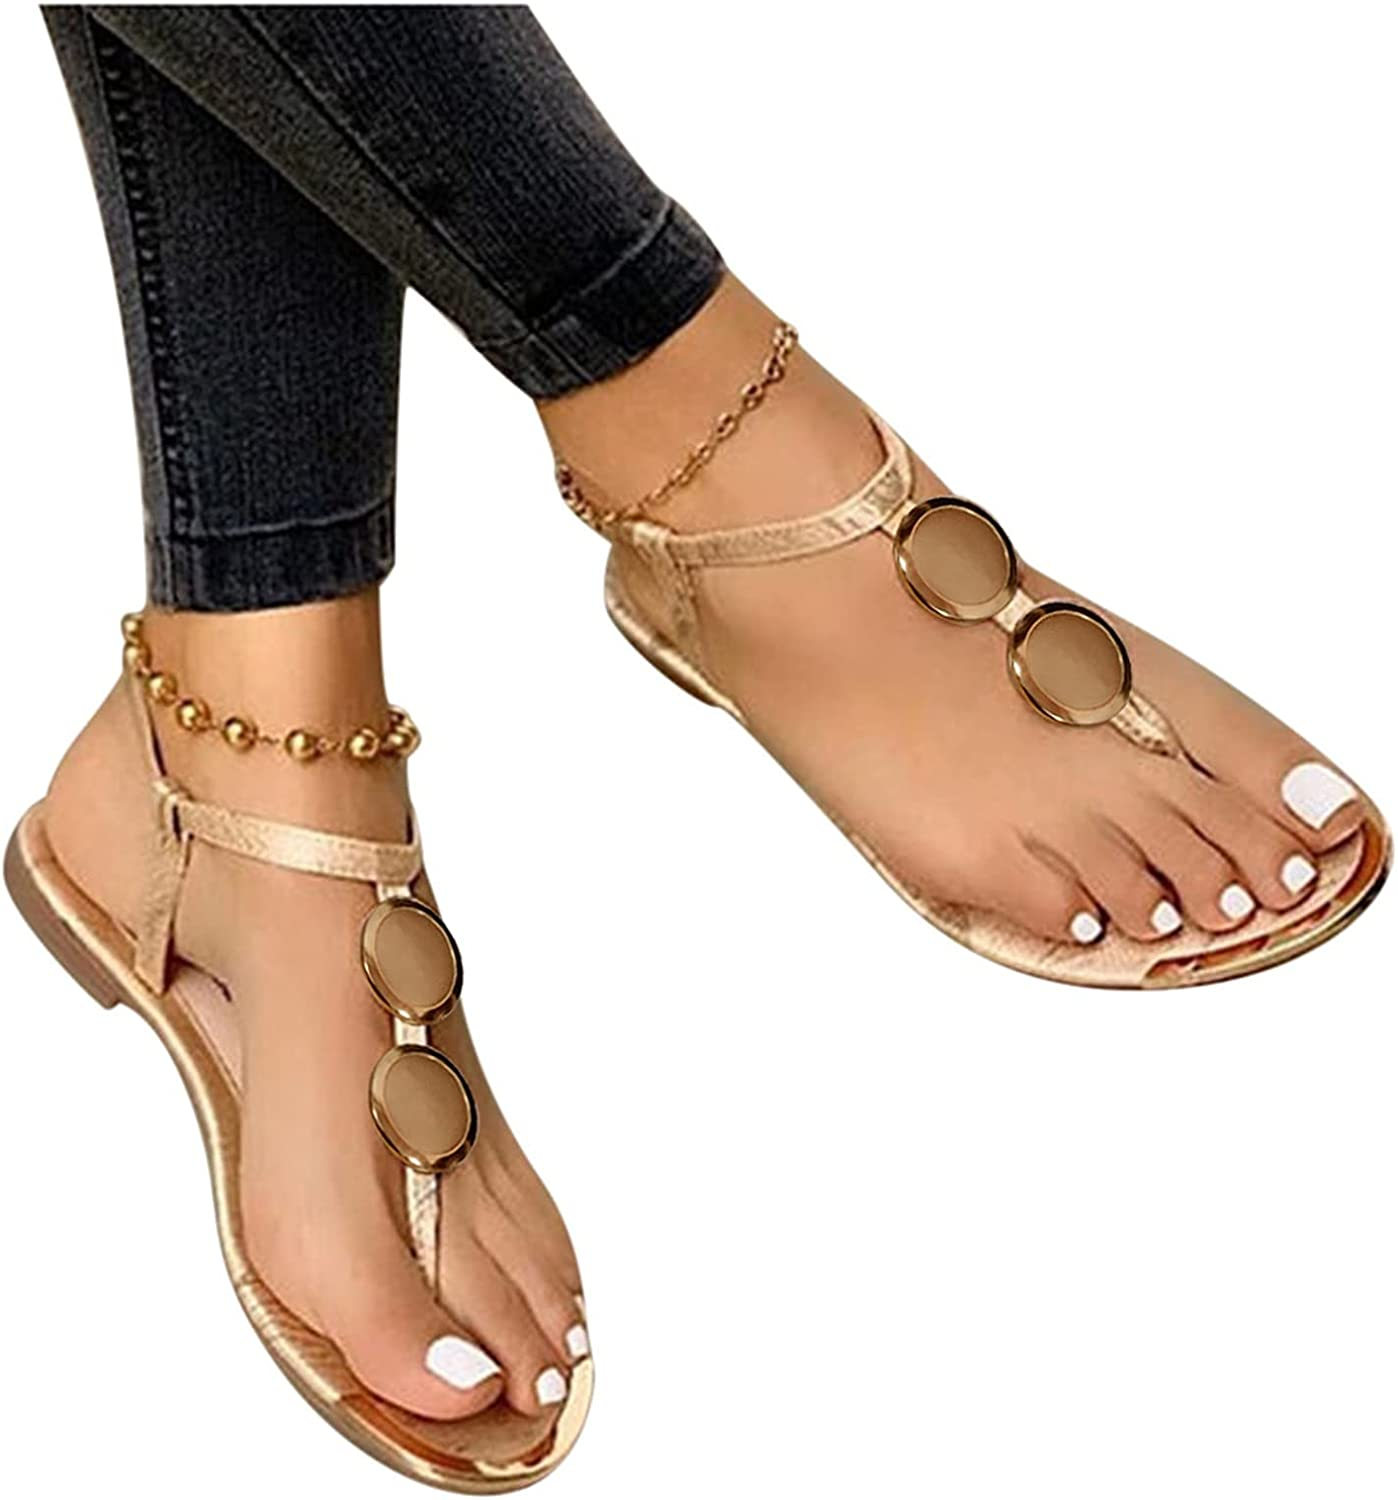 Sandals for Women,Rhinestone Bohemian Open Toe Flat Sandals Casual Outdoor Beach Travel Shoes Sandals